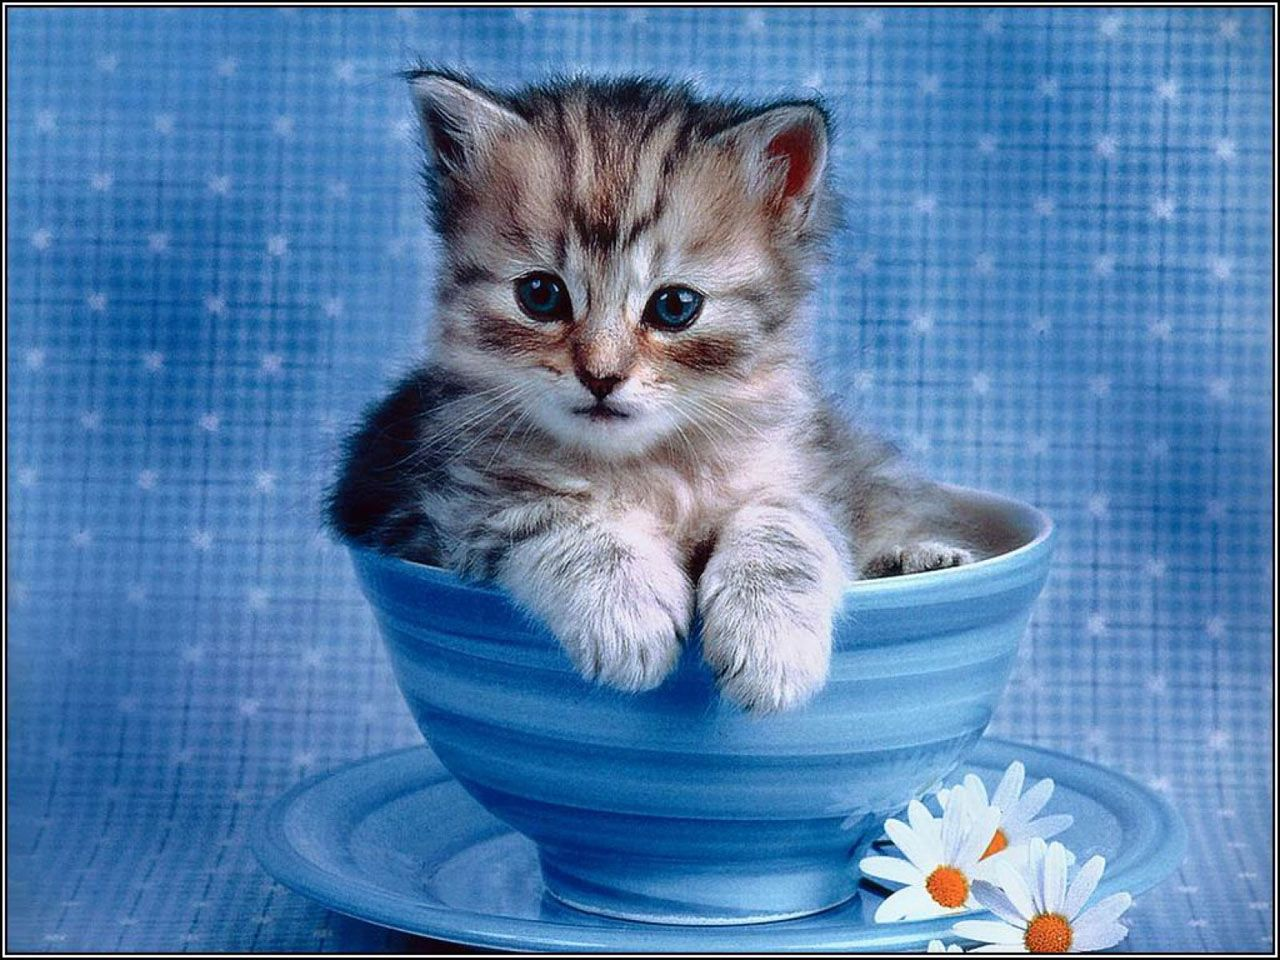 Cute Laptop Screensavers Free Impossibly Cute Kitten Cats Wallpaper Computer Desktop Kitten Wallpaper Kittens Cutest Cute Animals